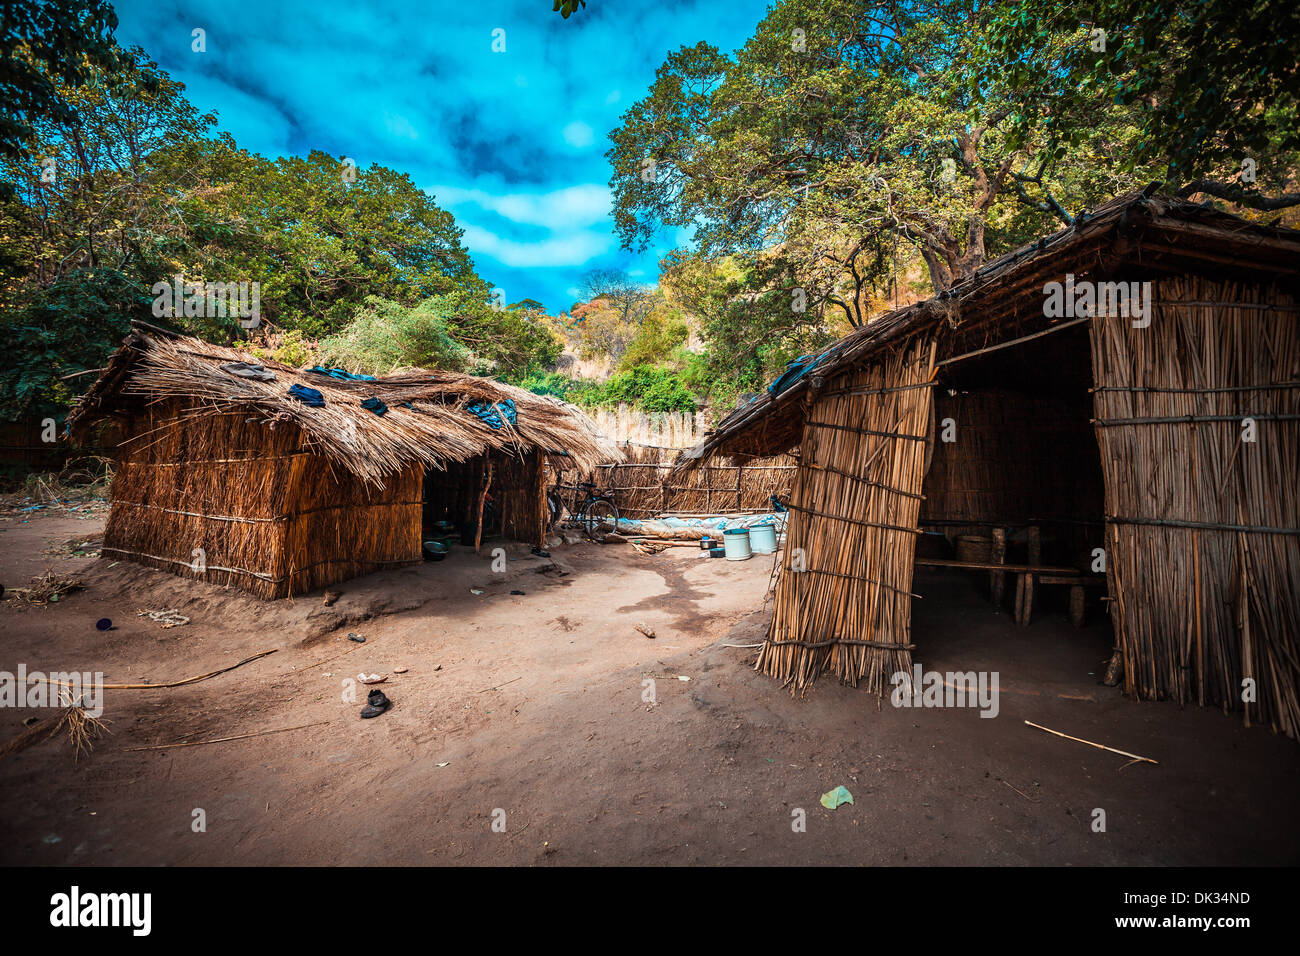 Humble village on the Malawi lake - Stock Image